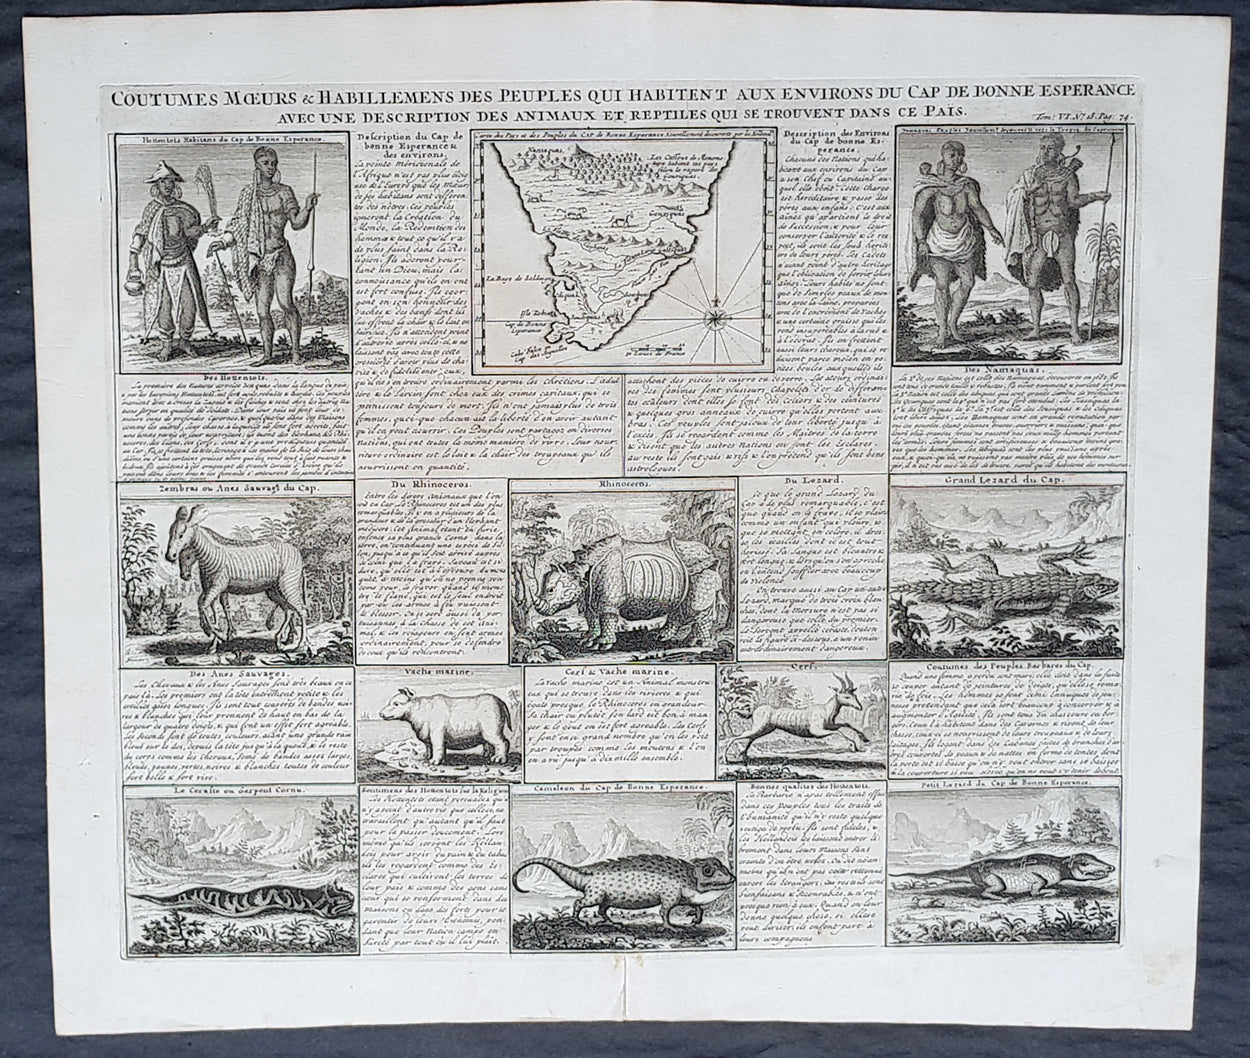 49ea3b5300b7c 1719 Henri Chatelain Rare Antique Map, Peoples, Animals & Views of Sou –  Classical Images